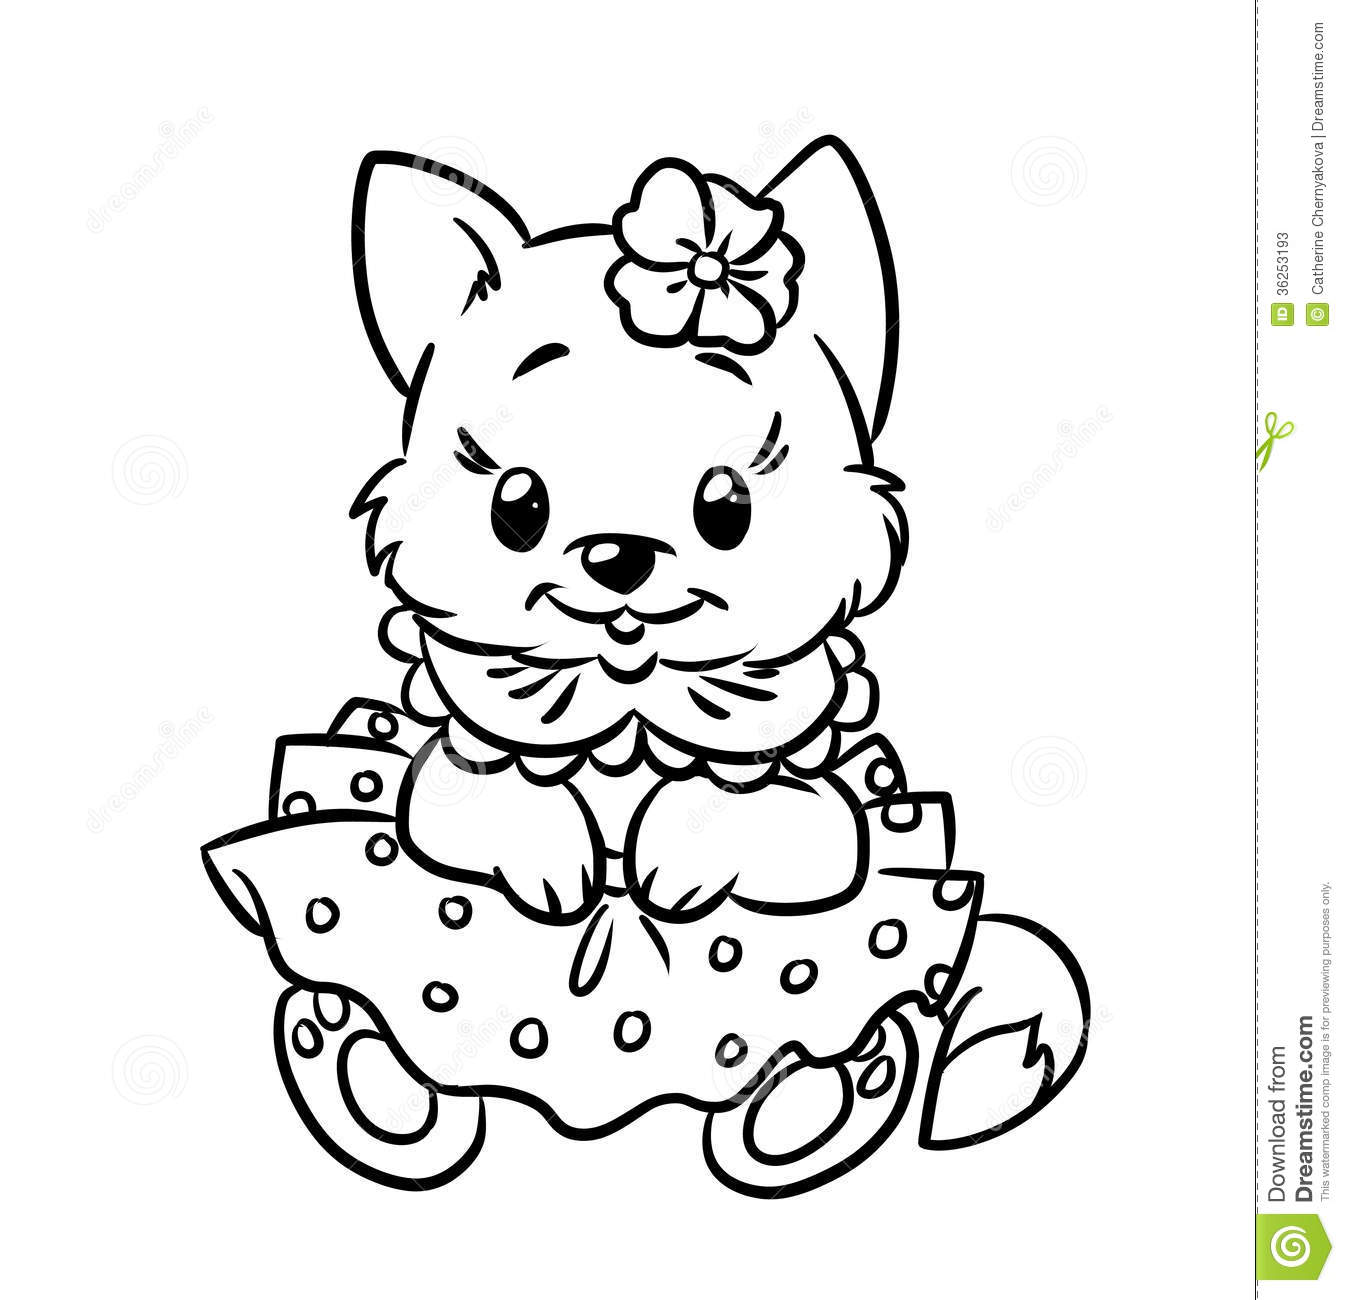 Kitten coloring pages to download and print for free